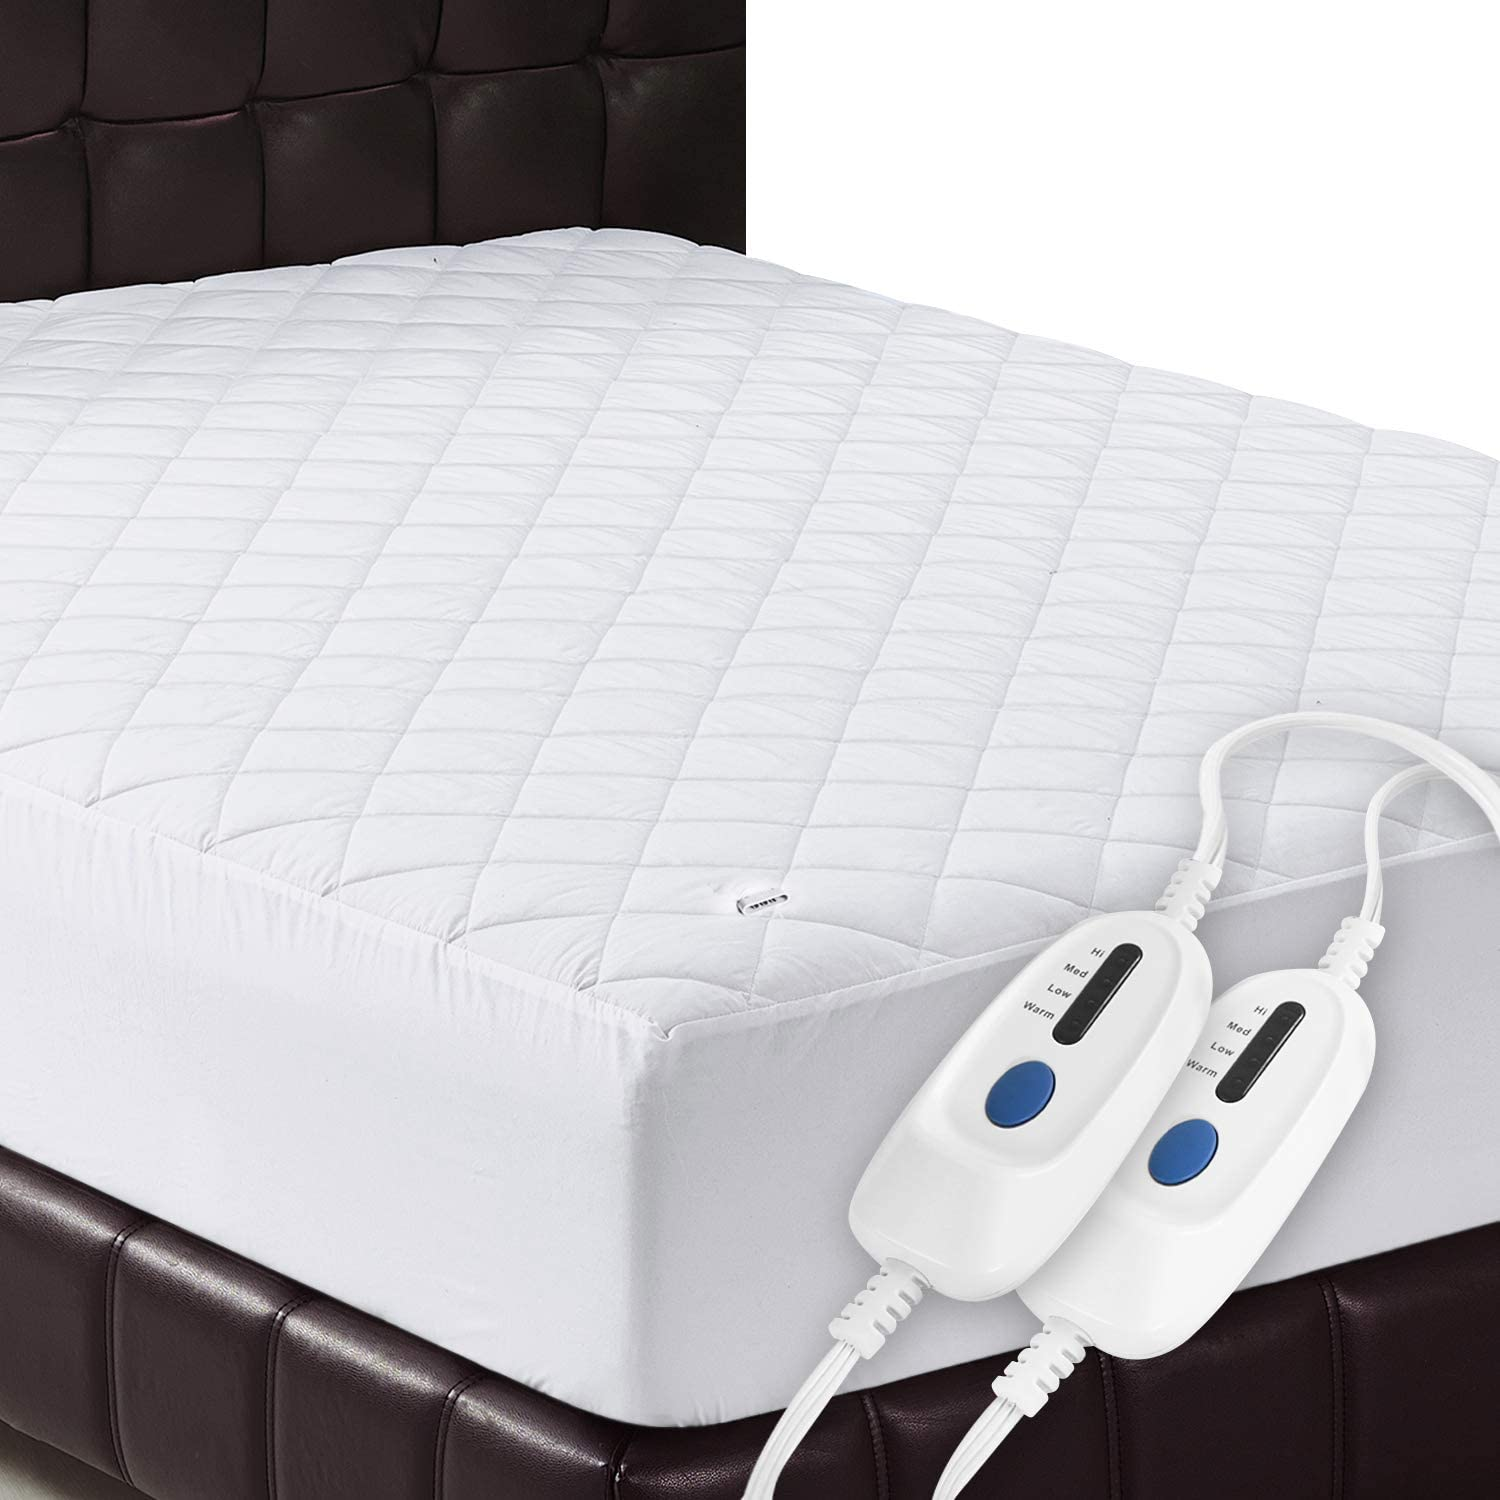 Utopia Bedding Heated Electric Mattress Pad - Machine Washable, 4 Heat Settings, 60 x 80 Inches (Queen, White)